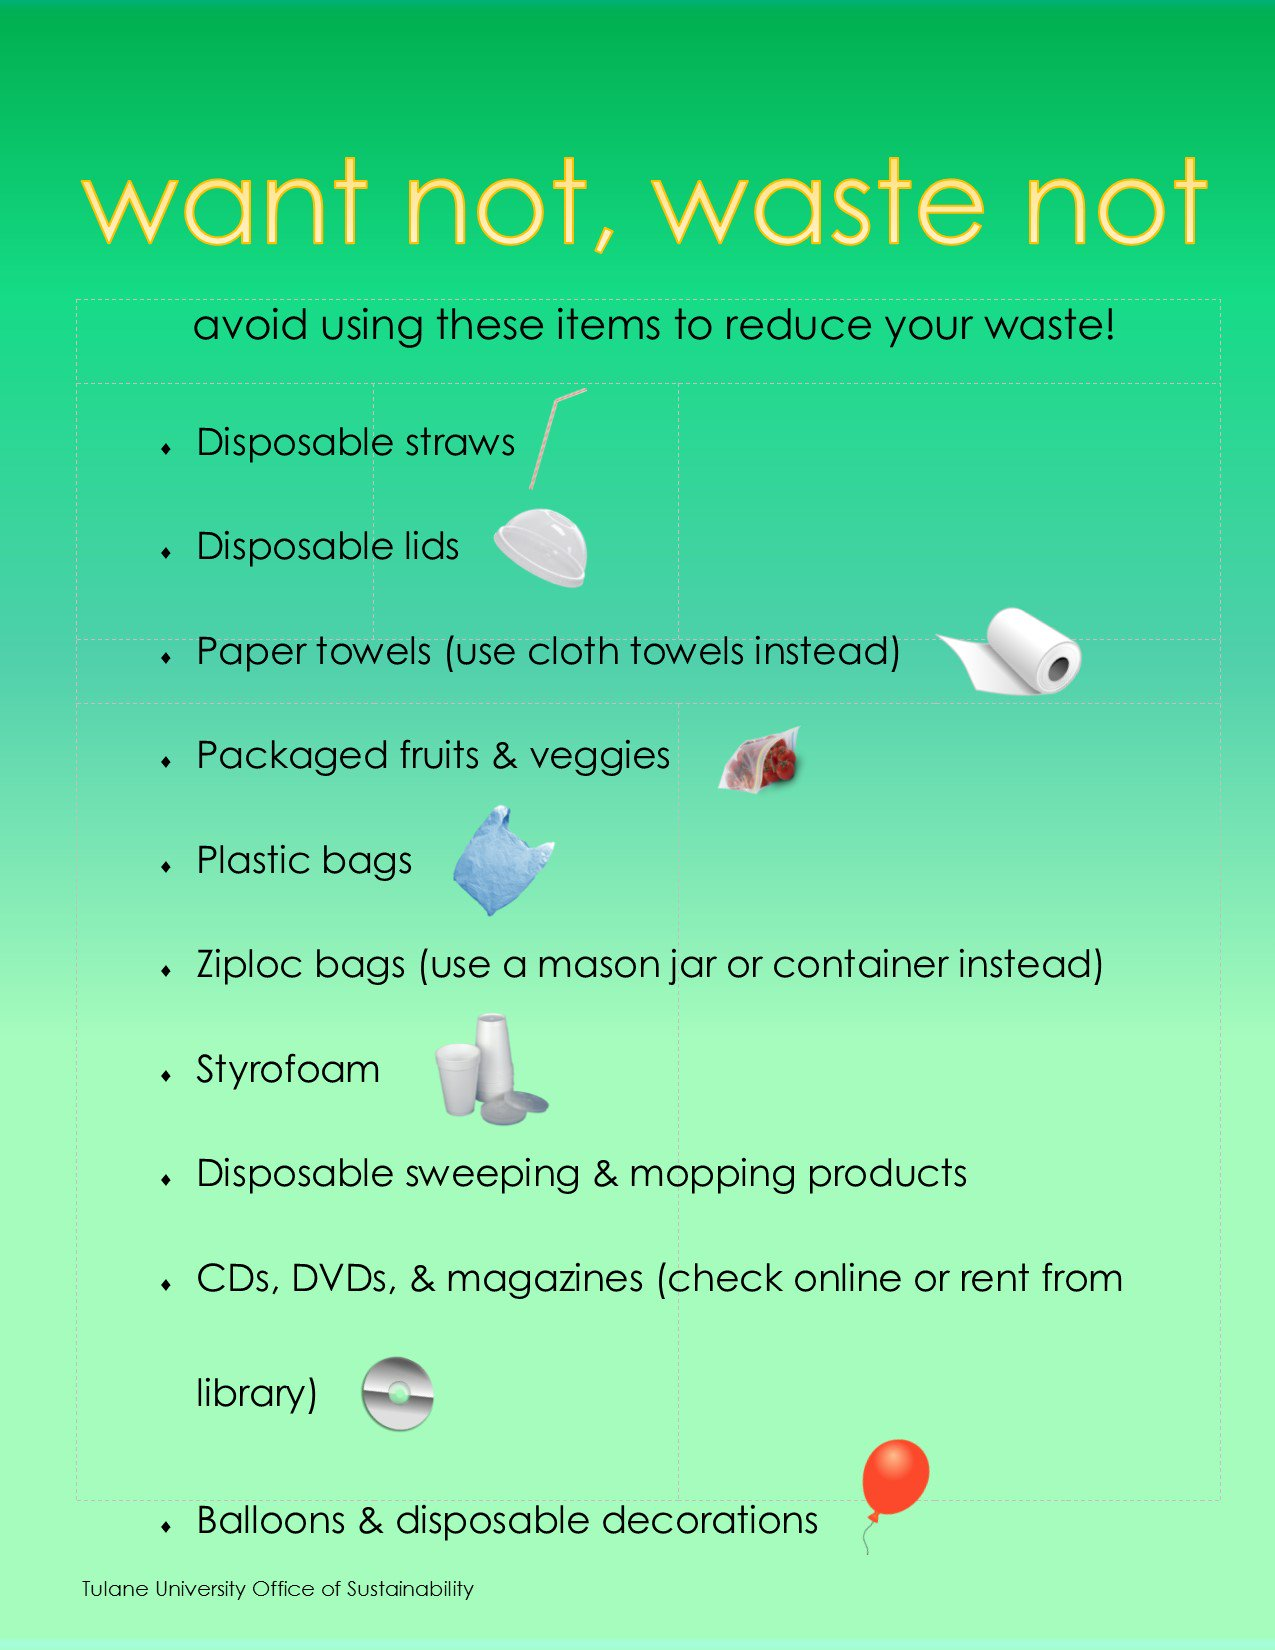 #SpringCleaning tip: get rid of these wasteful items! @TulaneLaw, show us how you reduce waste! #tulanerecycles @RecycleManiacs https://t.co/YUjBTJhwa7